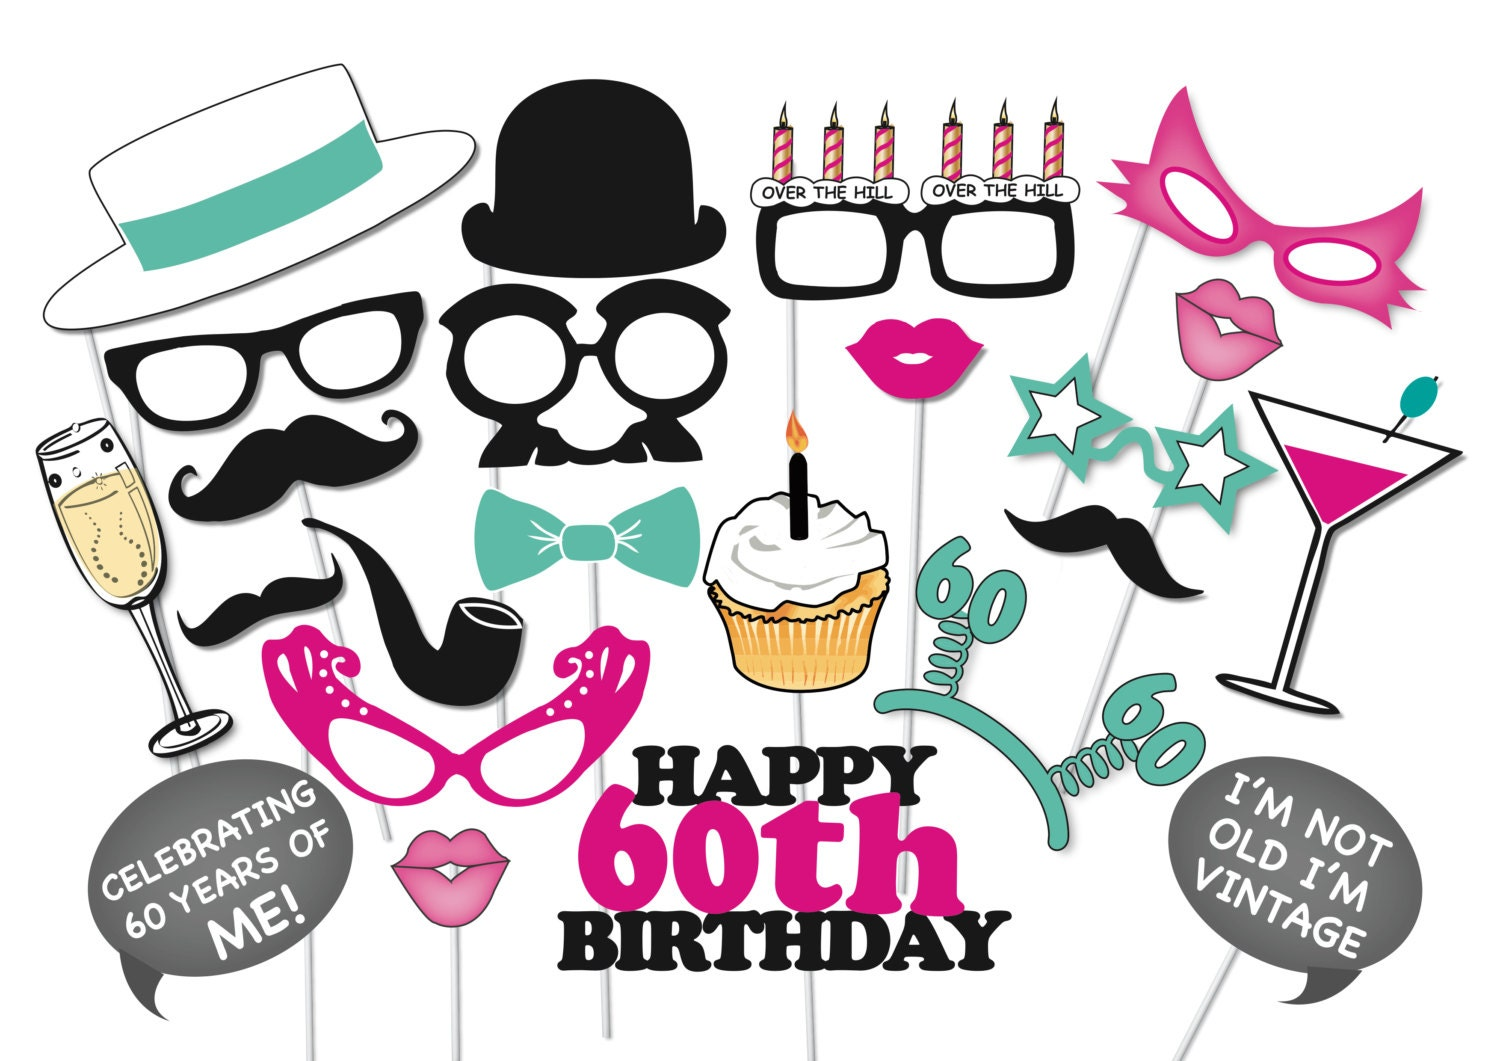 60th birthday photobooth party props set 26 piece printable rh etsy com  over the hill birthday clipart free